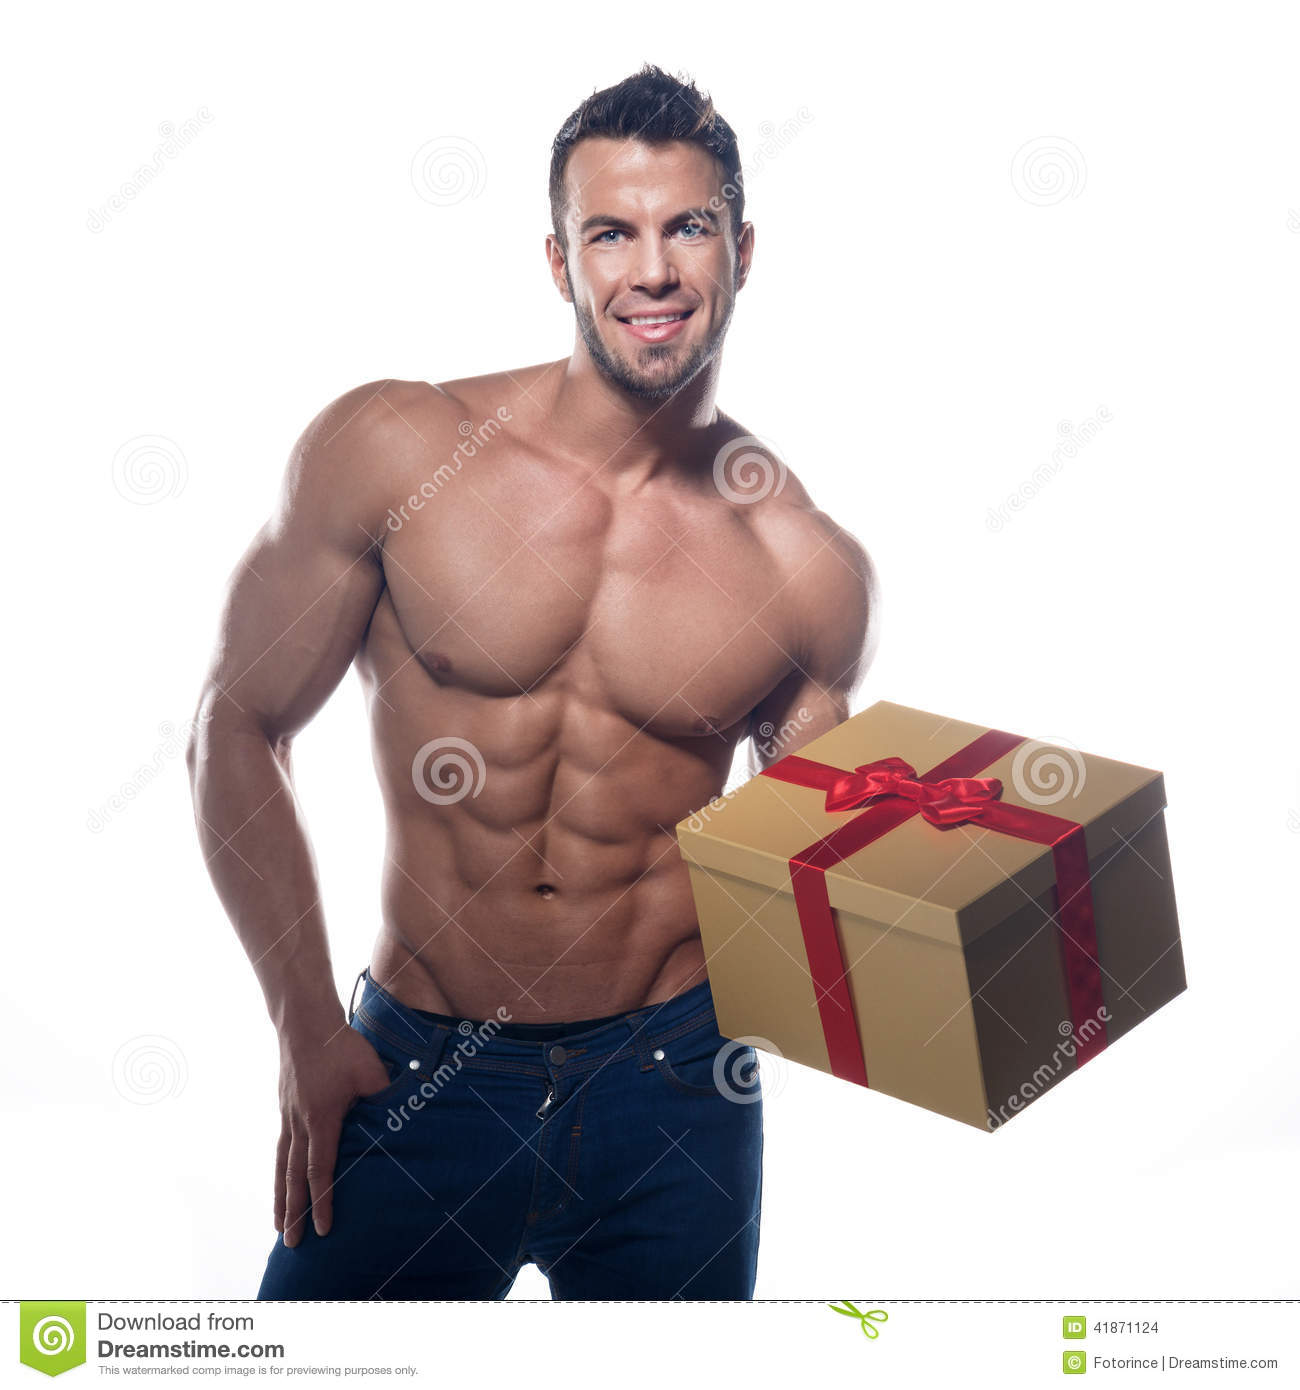 Muscular man with a gift stock photo. Image of costume